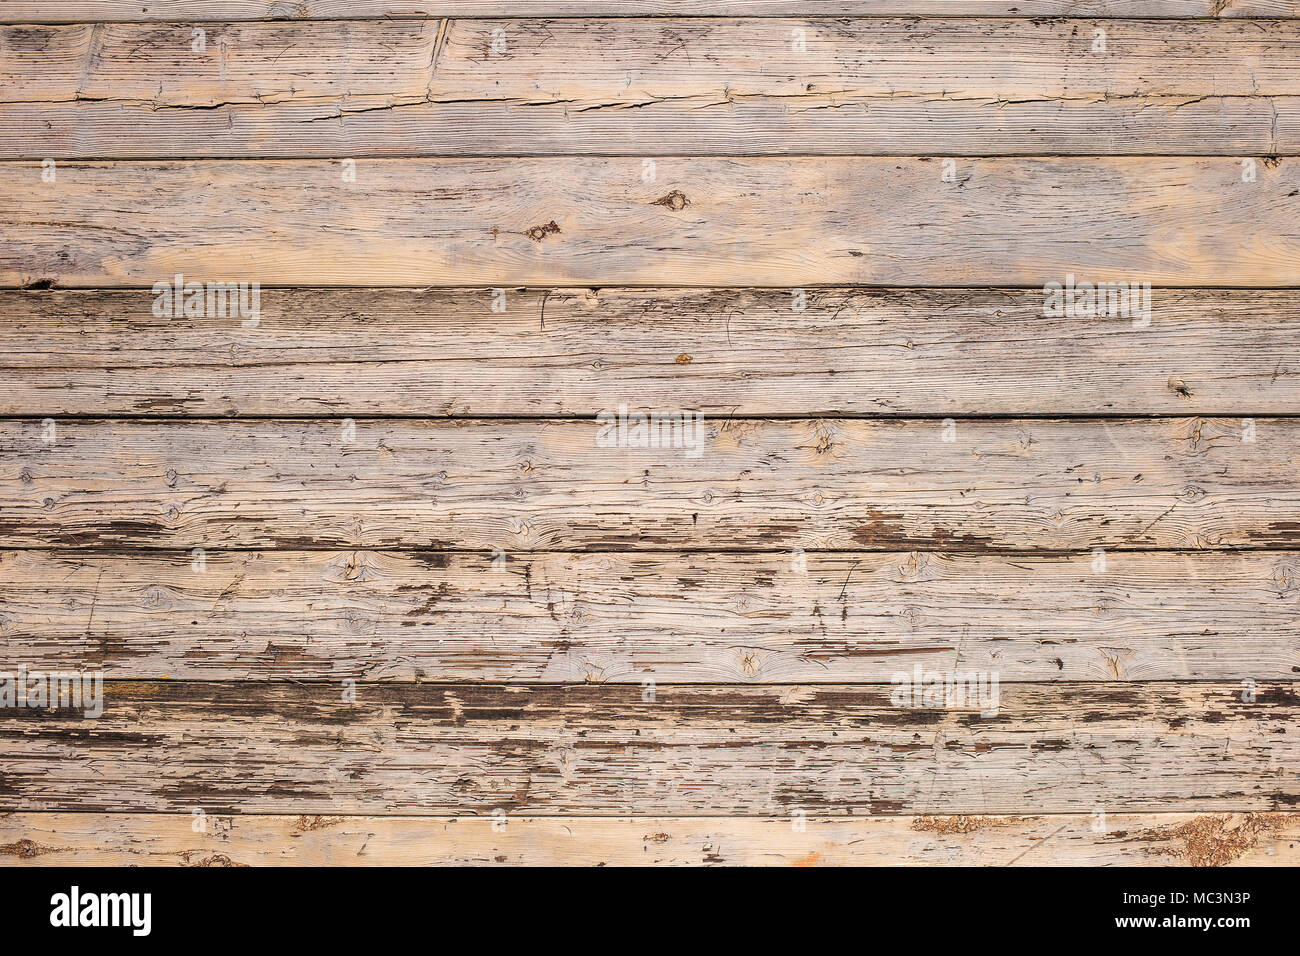 horizontal wood background. Natural Aged Brown Wooden Background. Horizontal Color Photography. Horizontal Wood Background